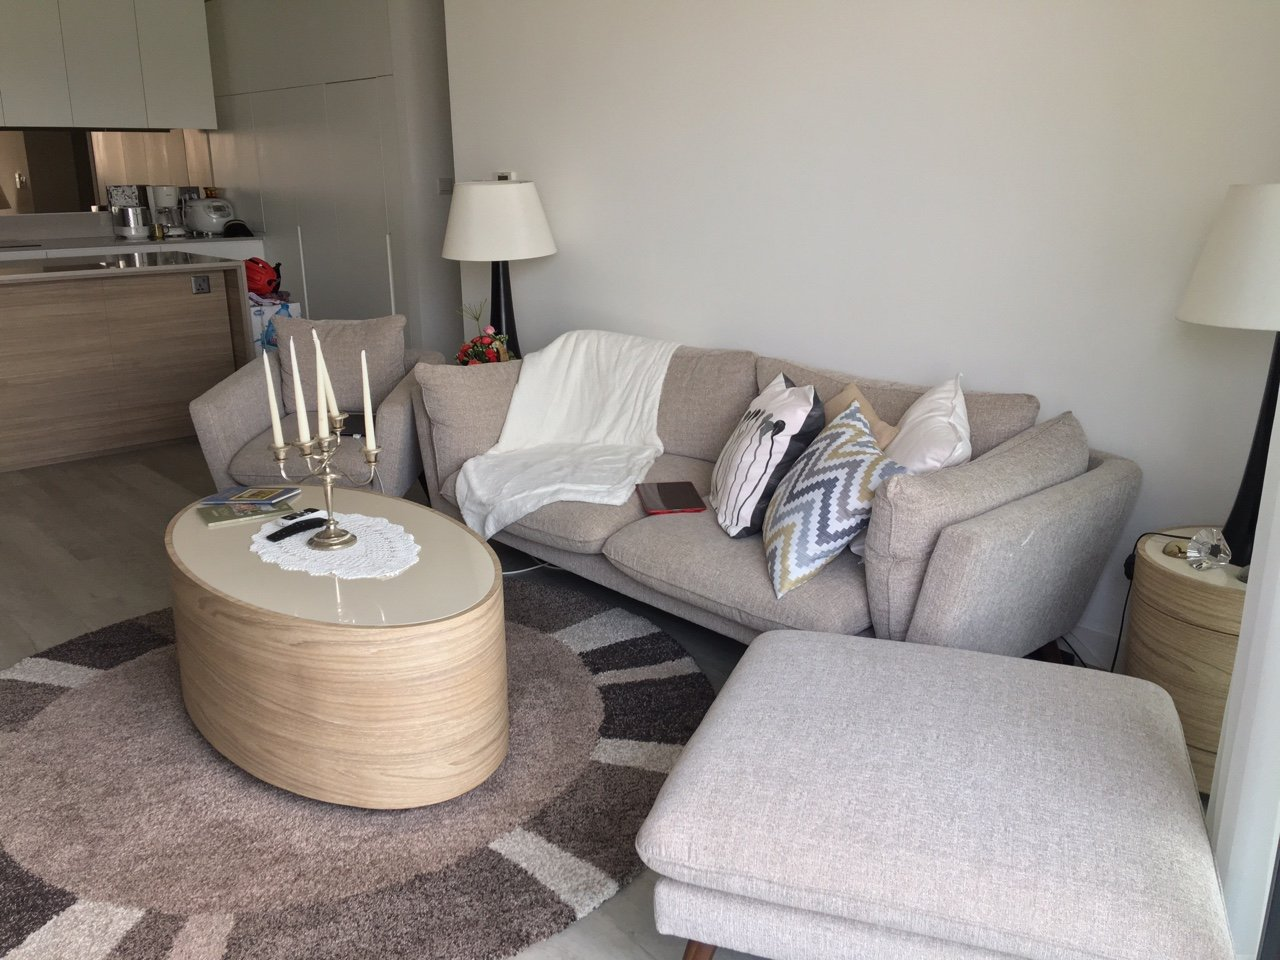 Apartment for rent BT102452 (3)